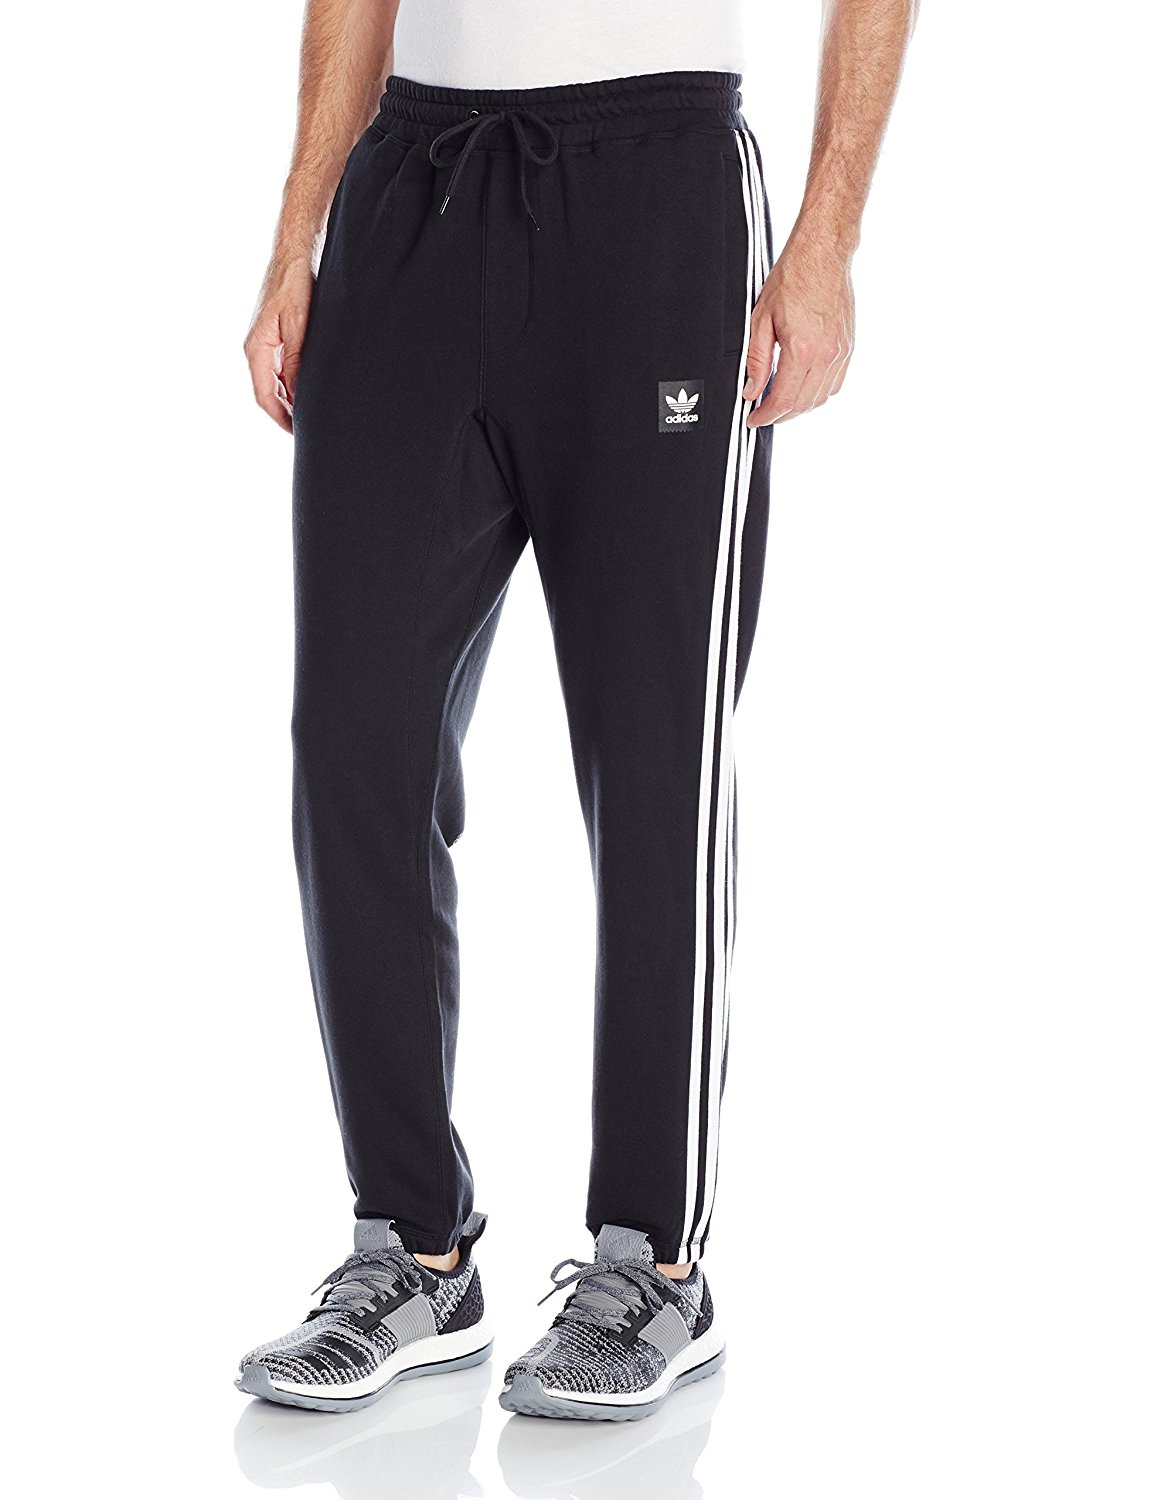 5fa54b385 adidas Originals Men s Skateboarding Blackbird Sweatpants at ...